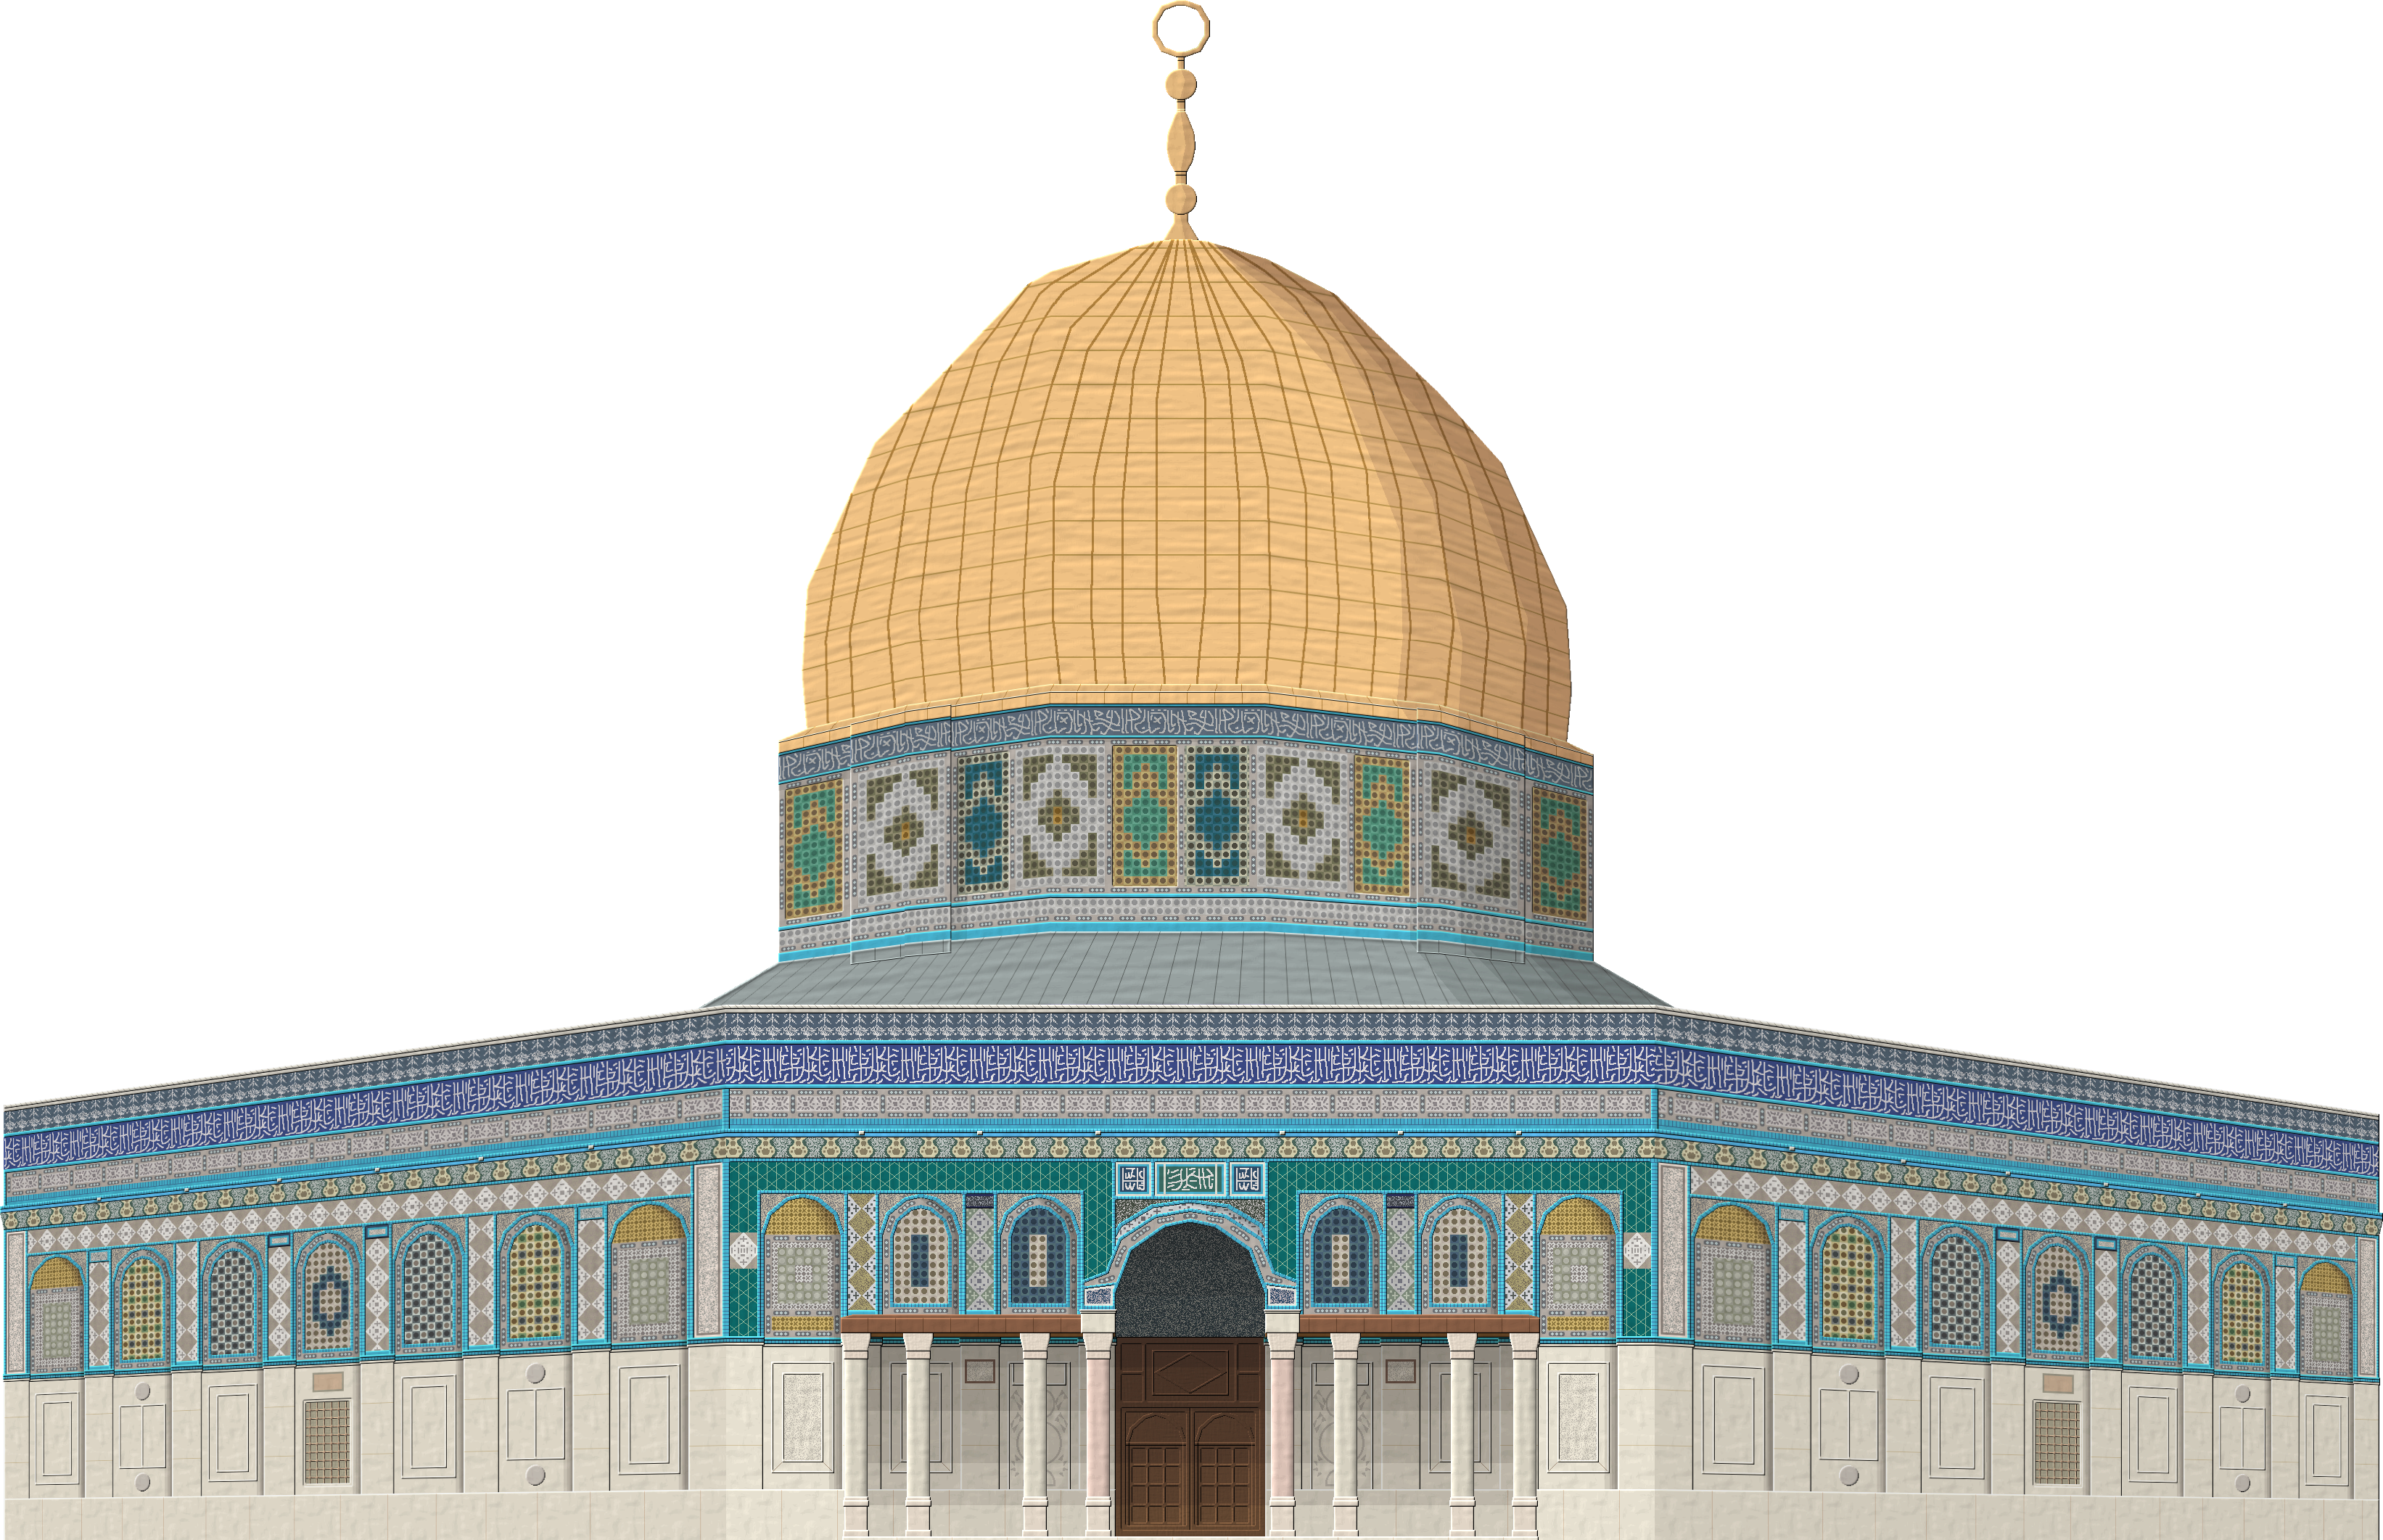 Jerusalem drawing architecture ottoman empire. Dome of the rock